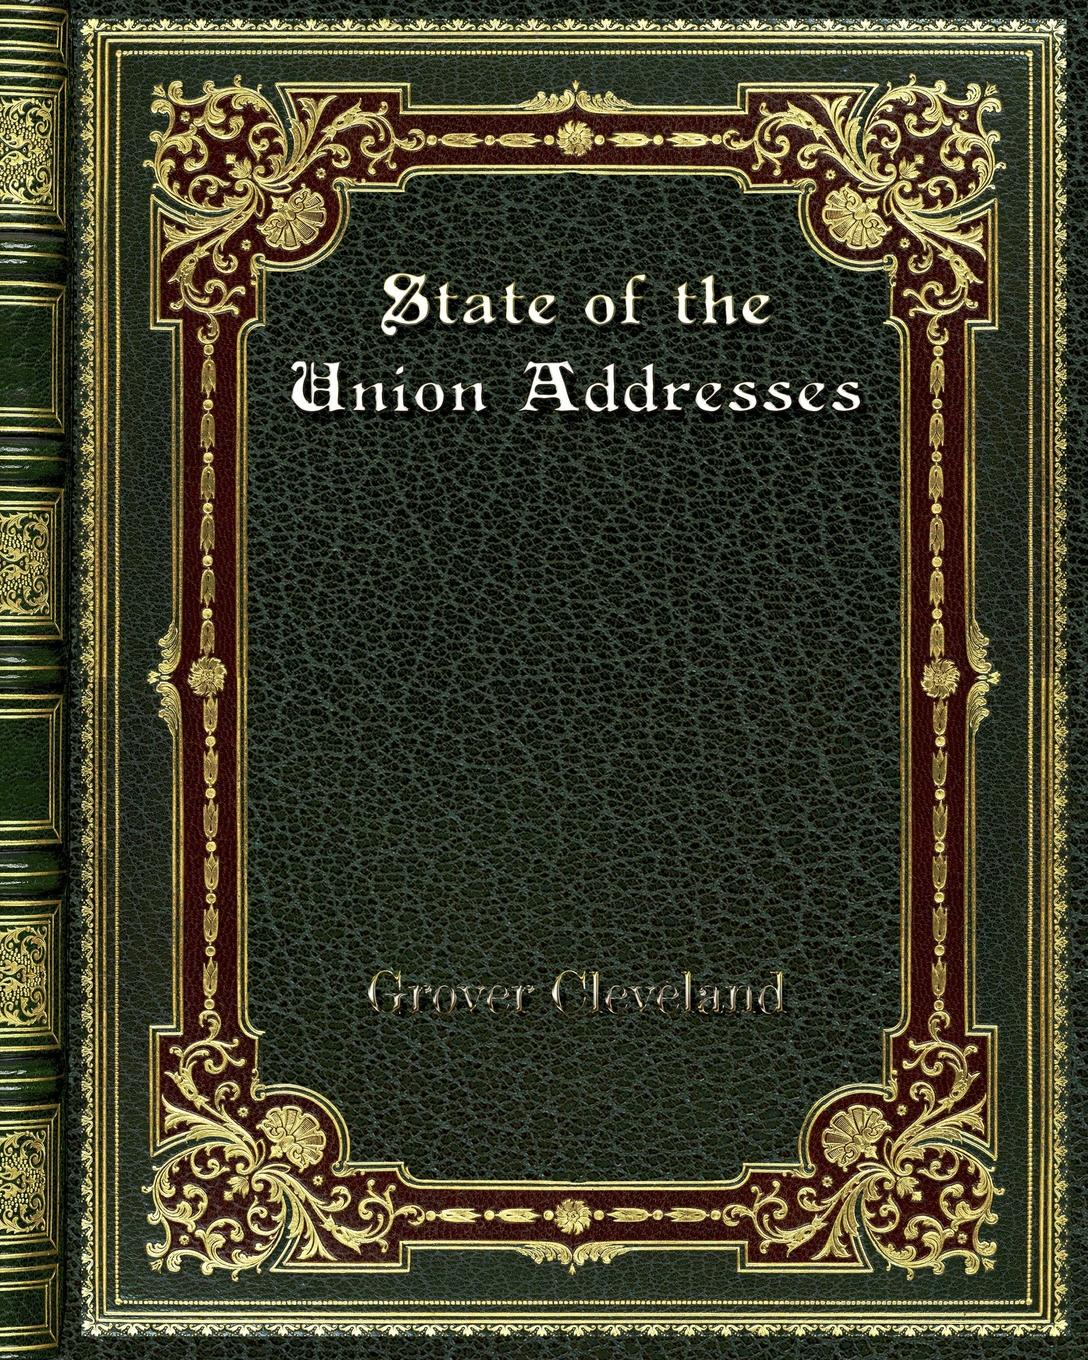 Grover Cleveland State of the Union Addresses